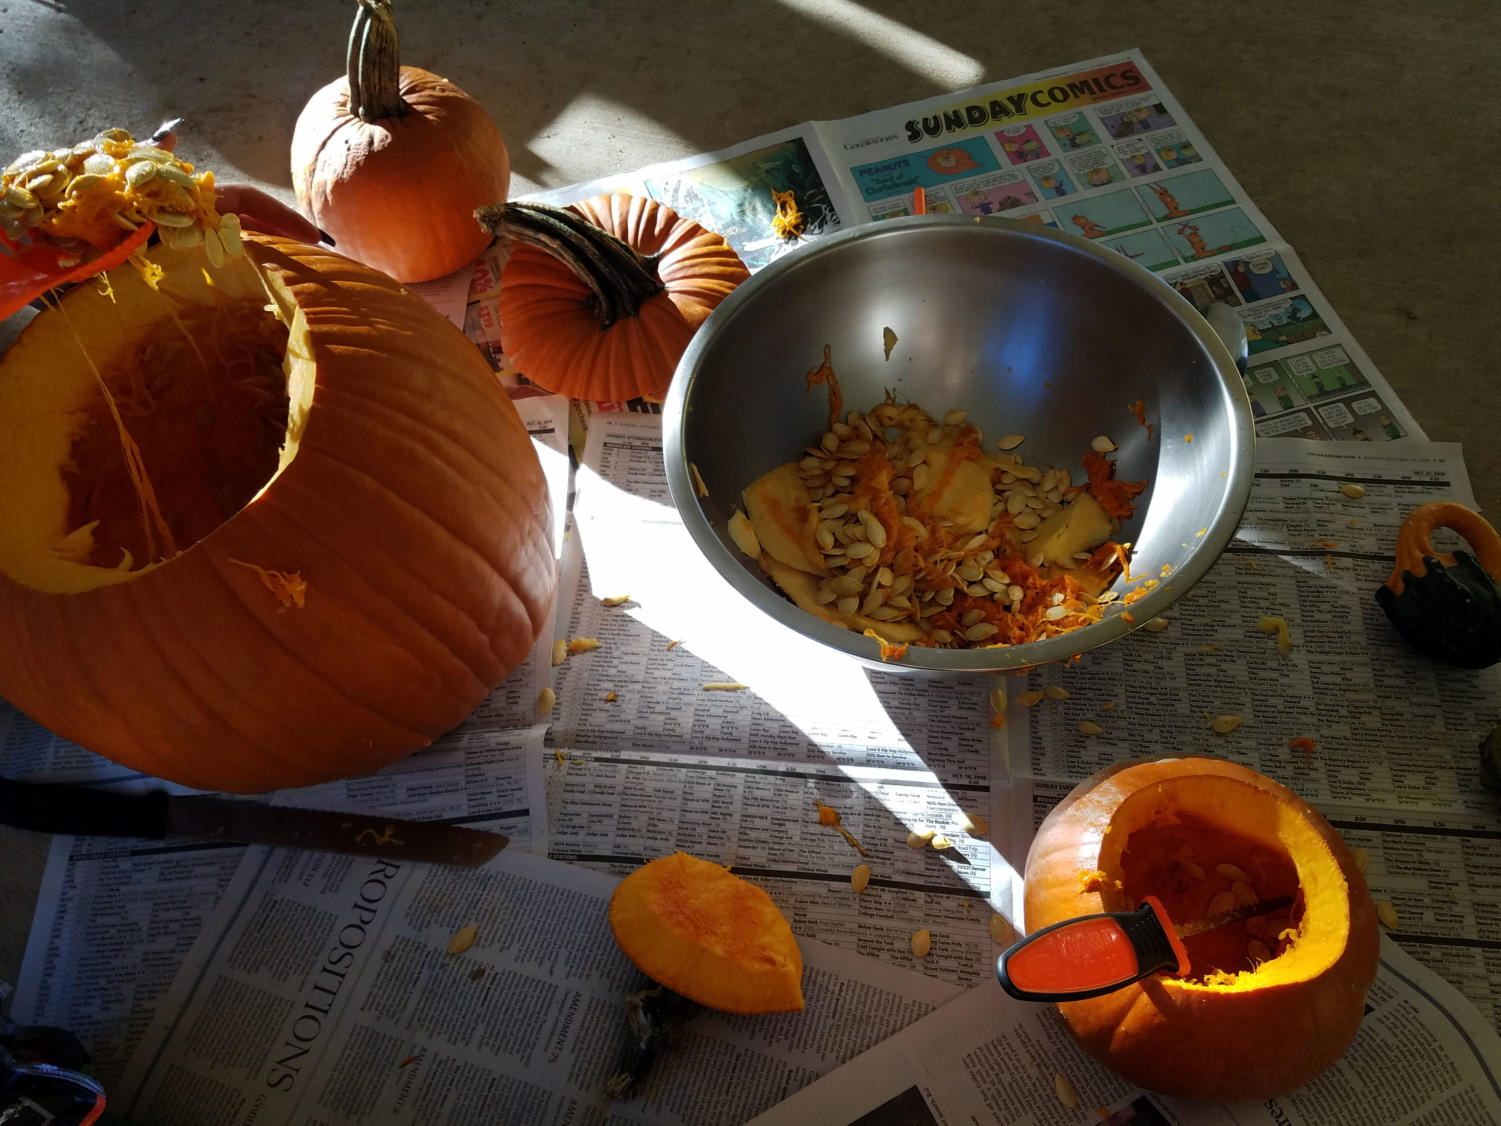 These past few sunny days have been perfect pumpkin carving weather - get out there before it's too cold again.